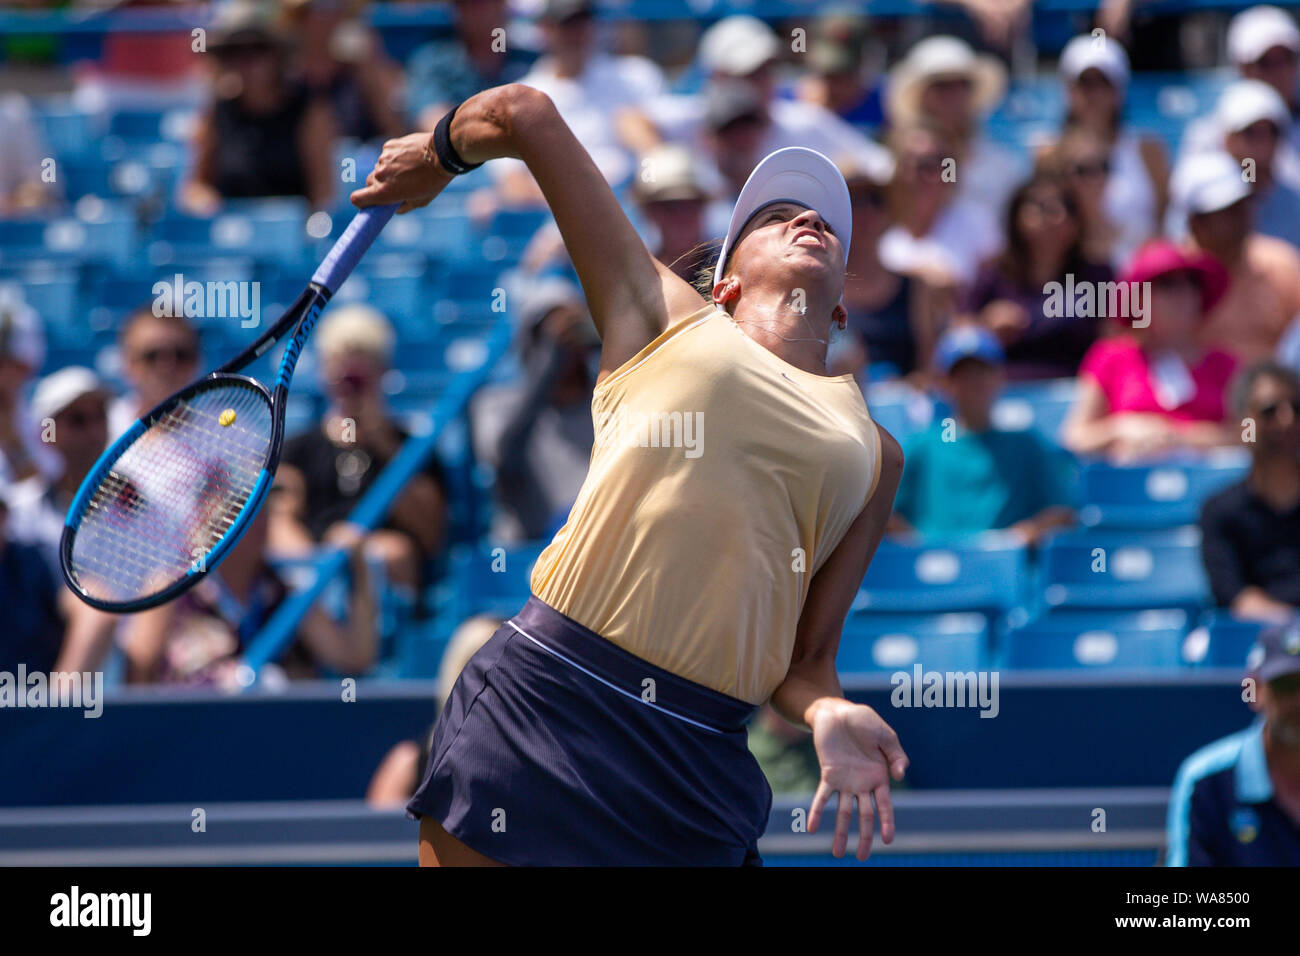 August 18, 2019, Mason, Ohio, USA: Madison Keys (USA) serves during Women's Final of the Western and Southern Open at the Lindner Family Tennis Center, Mason, Oh. (Credit Image: © Scott Stuart/ZUMA Wire) Stock Photo